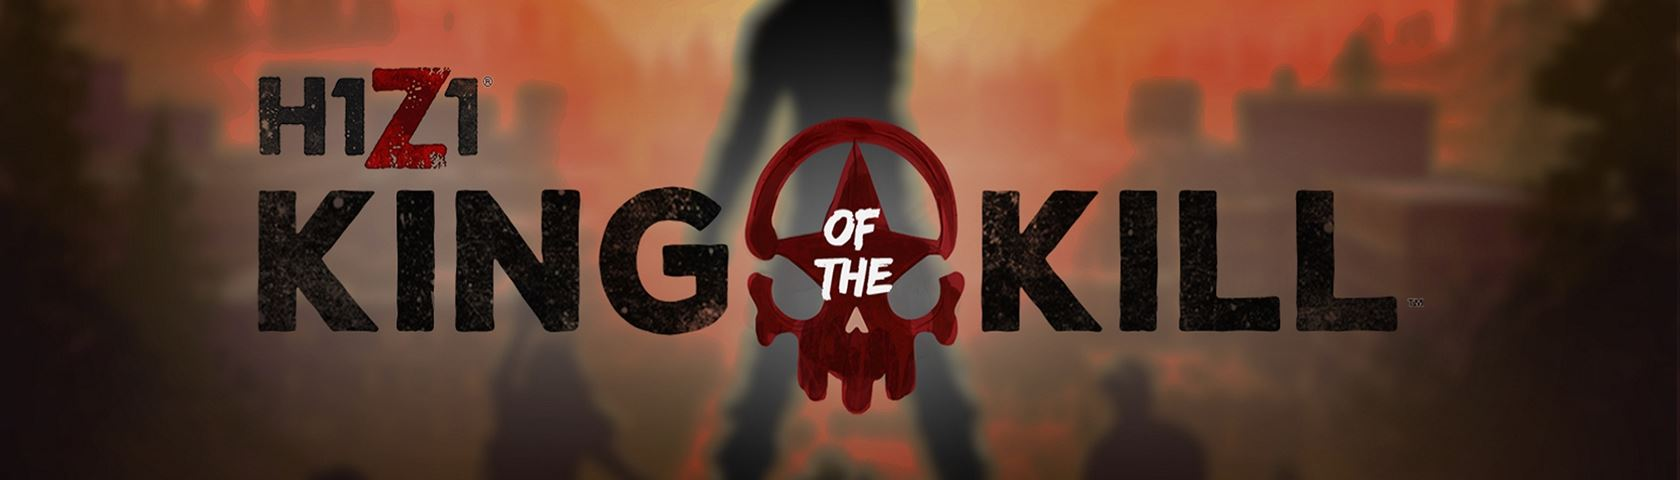 H1z1 King Of The Kill Graphic Design 259888 Hd